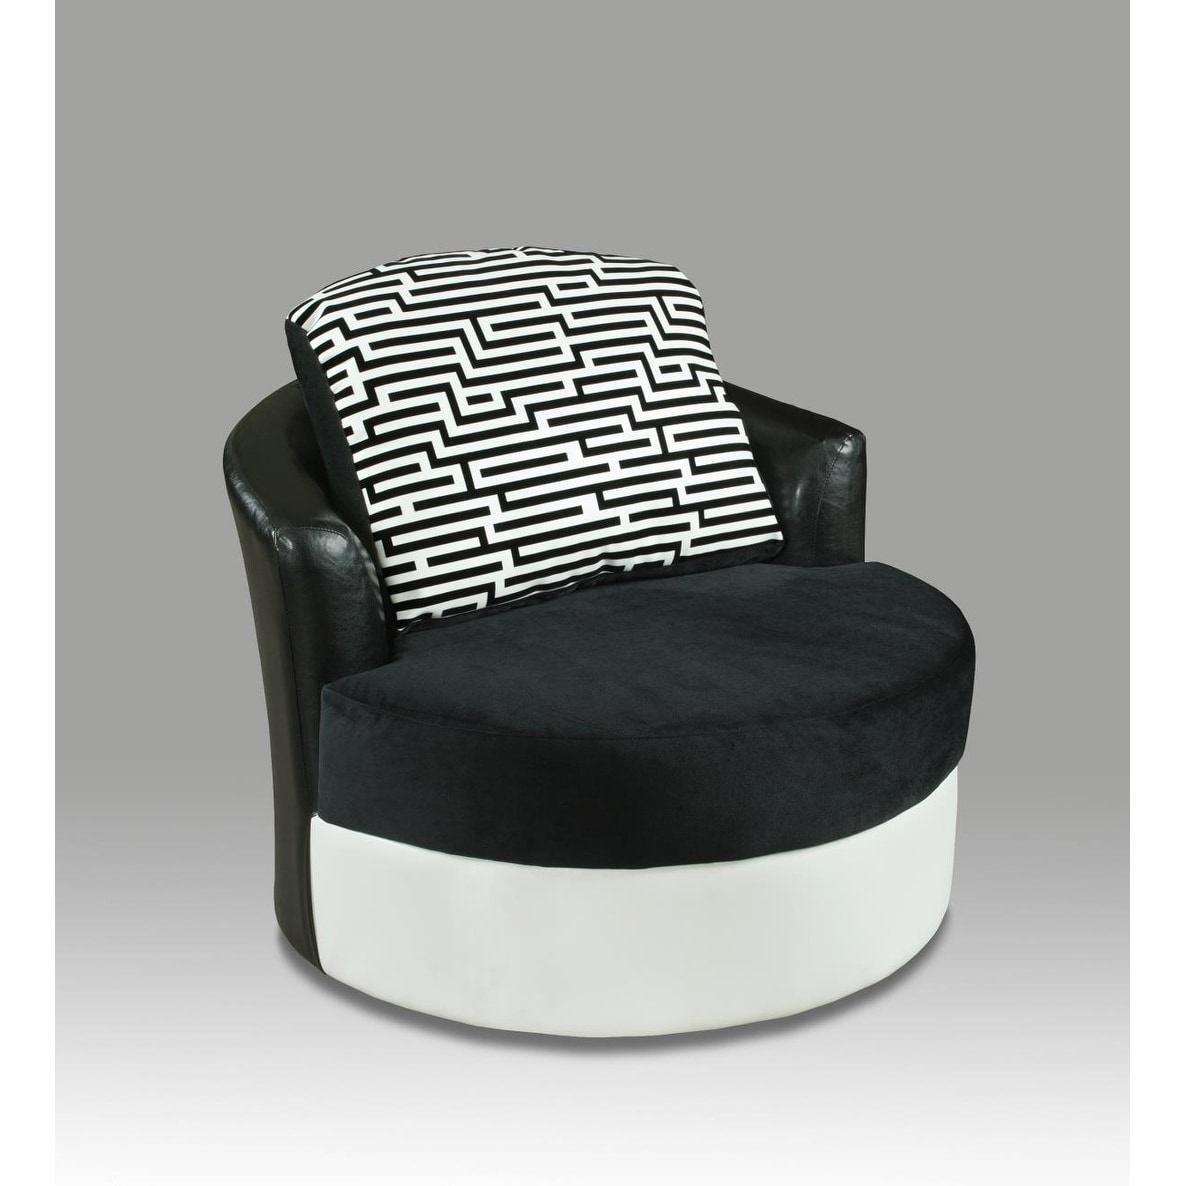 Astonishing Sofatrendz Donatella Zig Zag Black White Swivel Chair Short Links Chair Design For Home Short Linksinfo